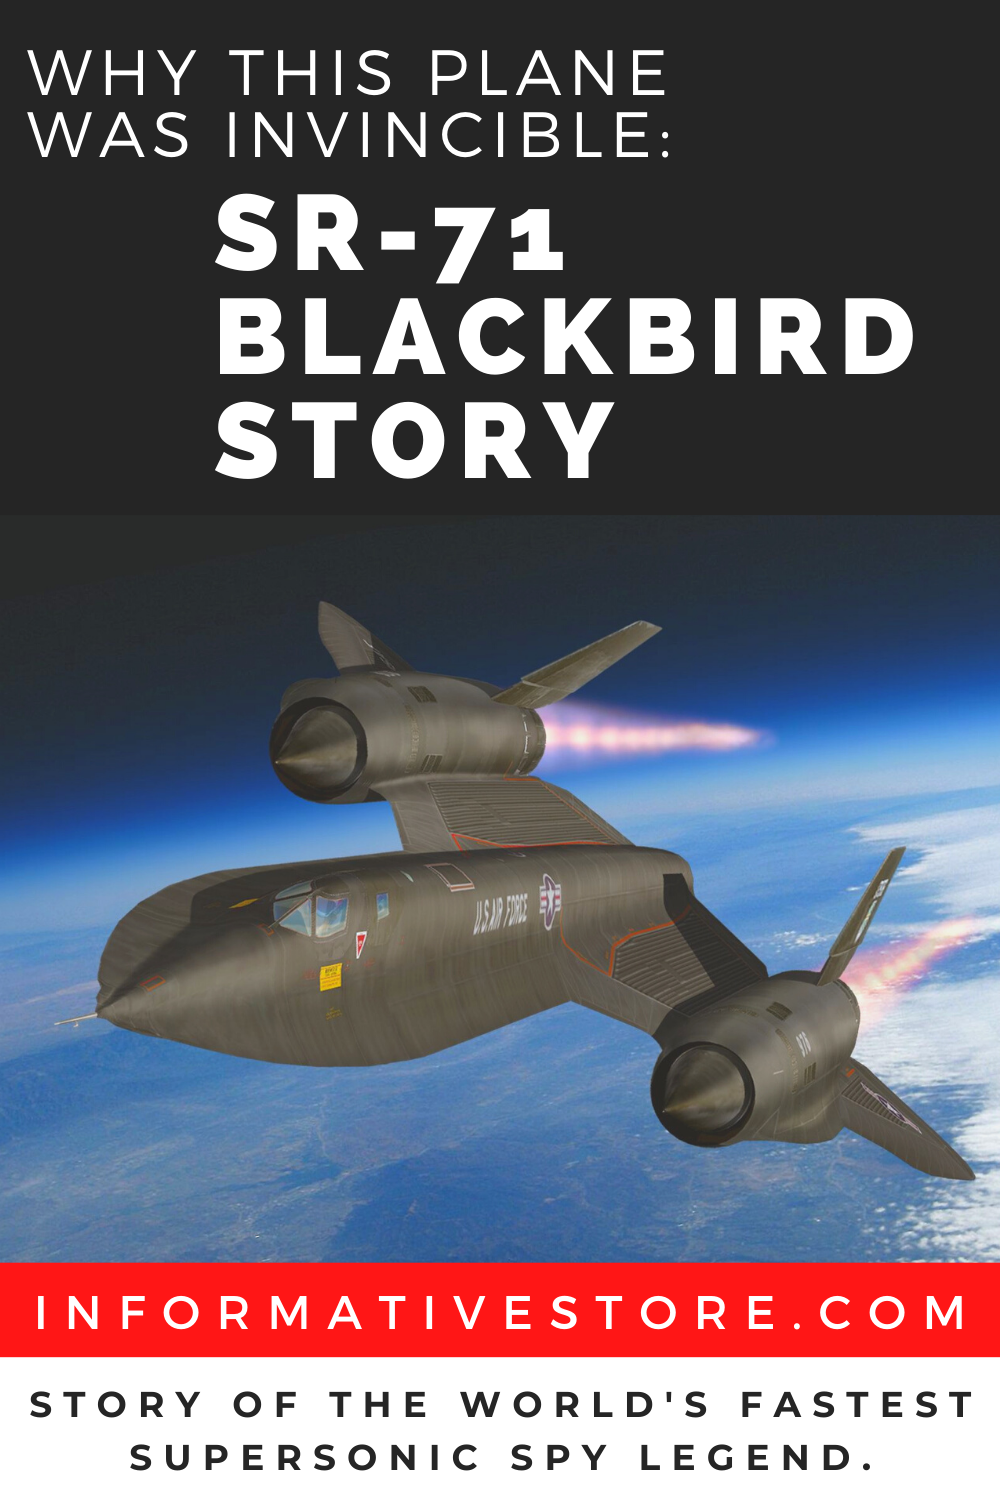 Why This Plane Was Invincible Sr 71 Blackbird Story In 2020 Sr 71 Blackbird Sr 71 Lockheed Sr 71 Blackbird